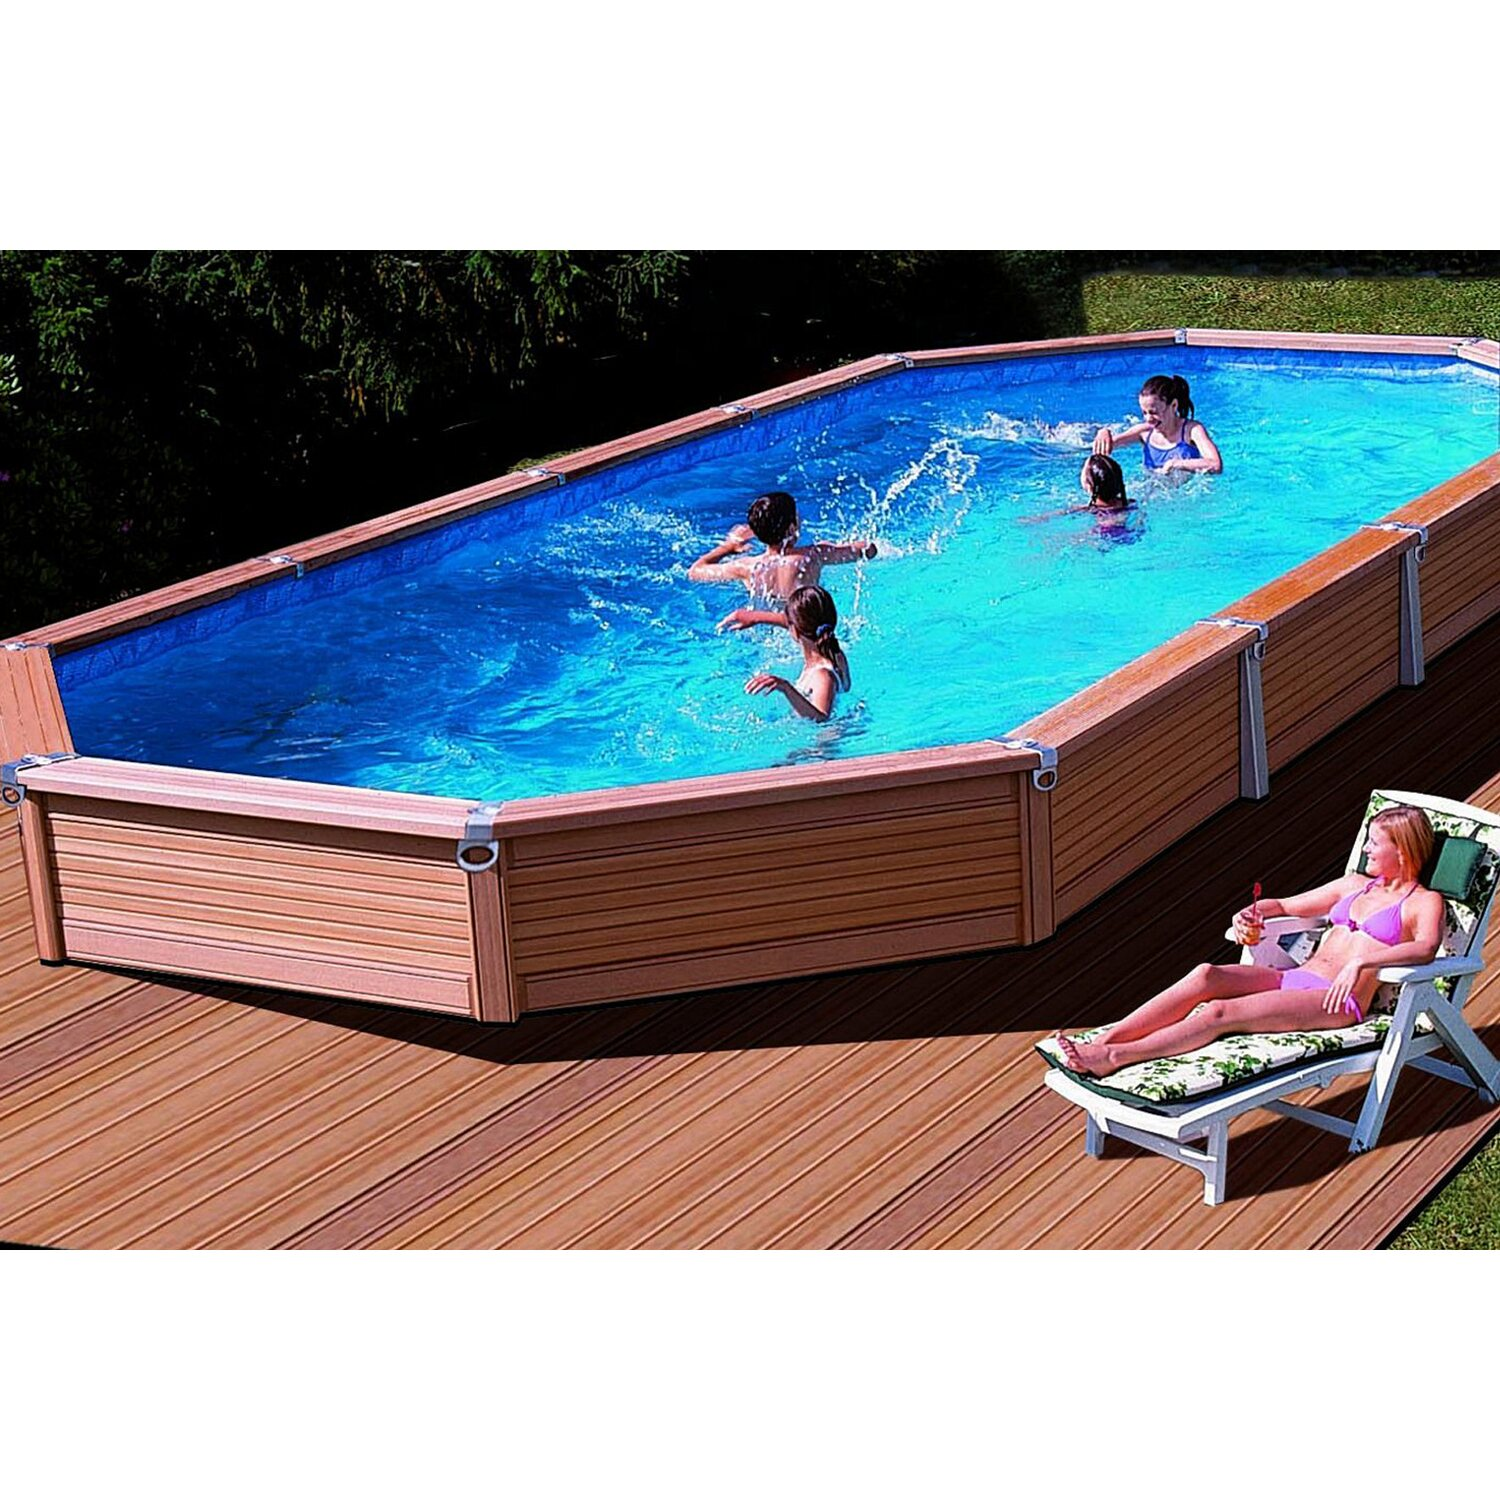 Summer fun pool set azteck einbaubecken ovalform 560 cm x for Obi holzpool